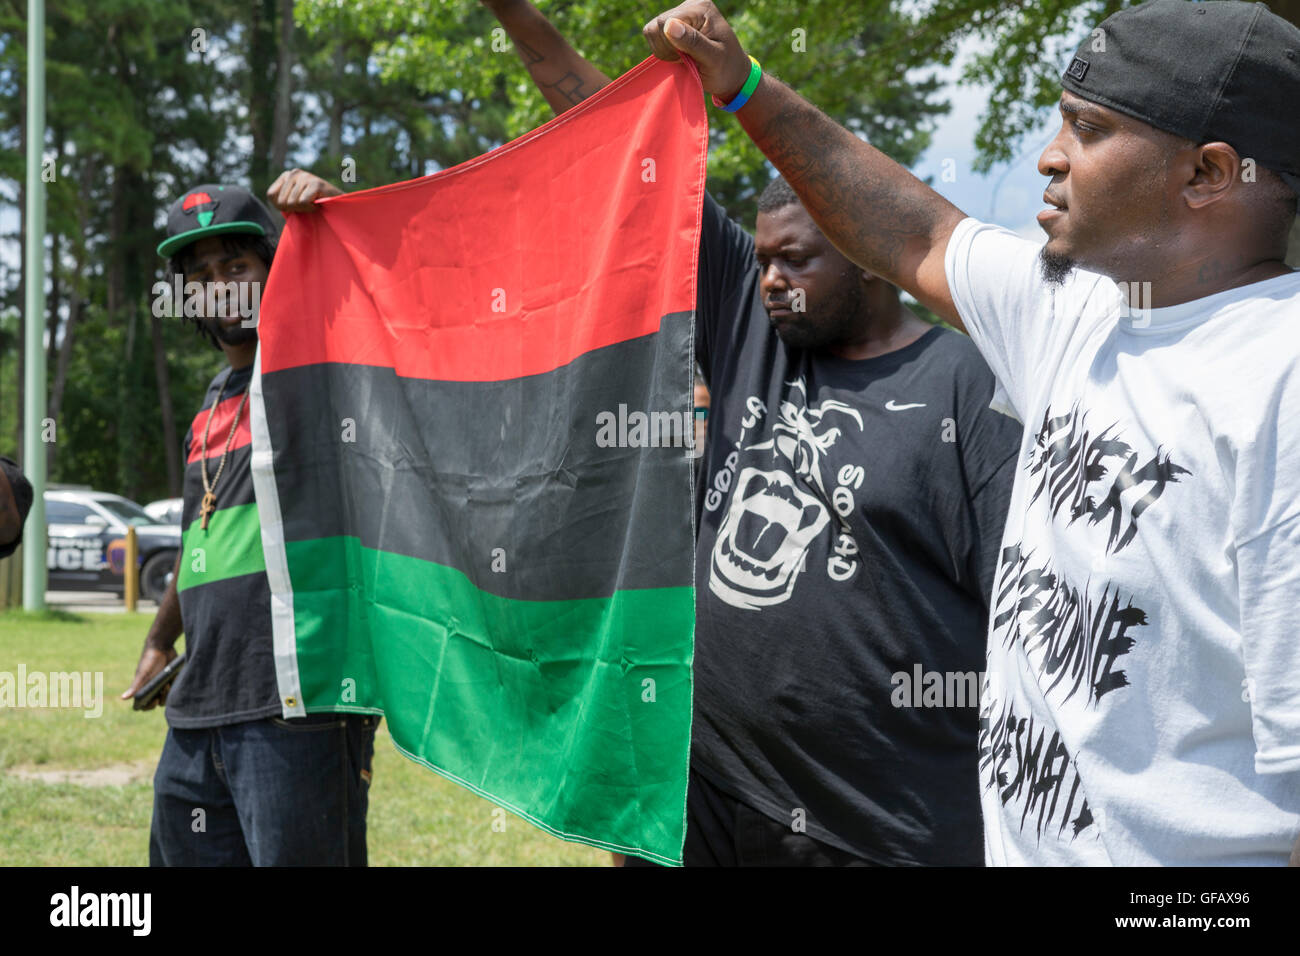 Members of Black Lives Matter display their flag at a rally in Tupelo, Ms. on Saturday, July 30th. Credit:  Tim - Stock Image